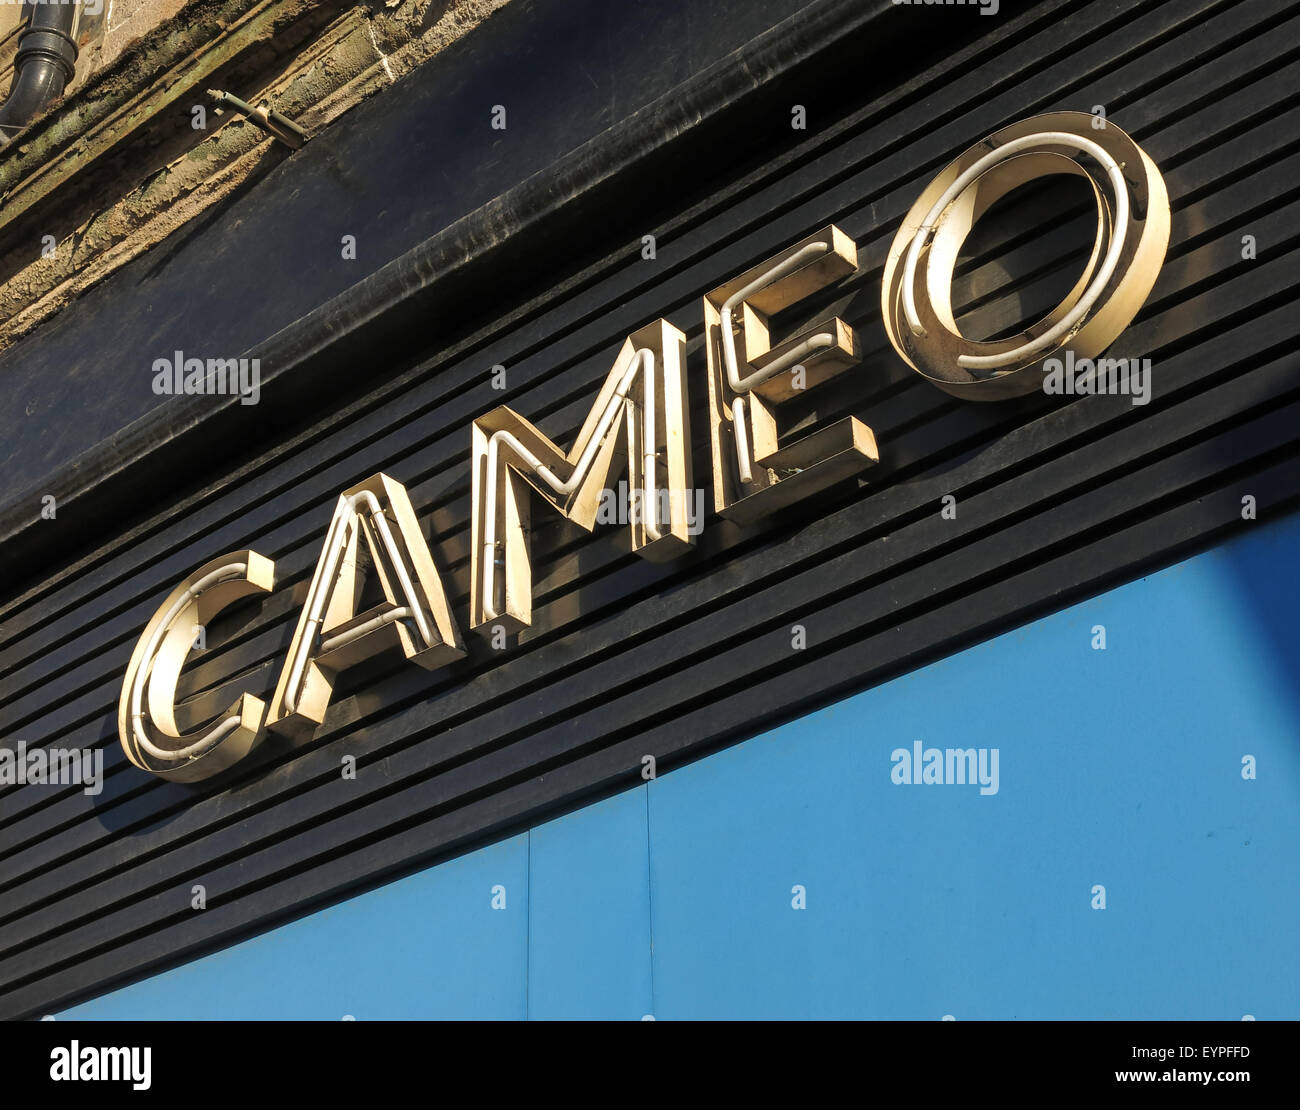 Cameo Cinema Club Edinburgh,Scotland - Stock Image